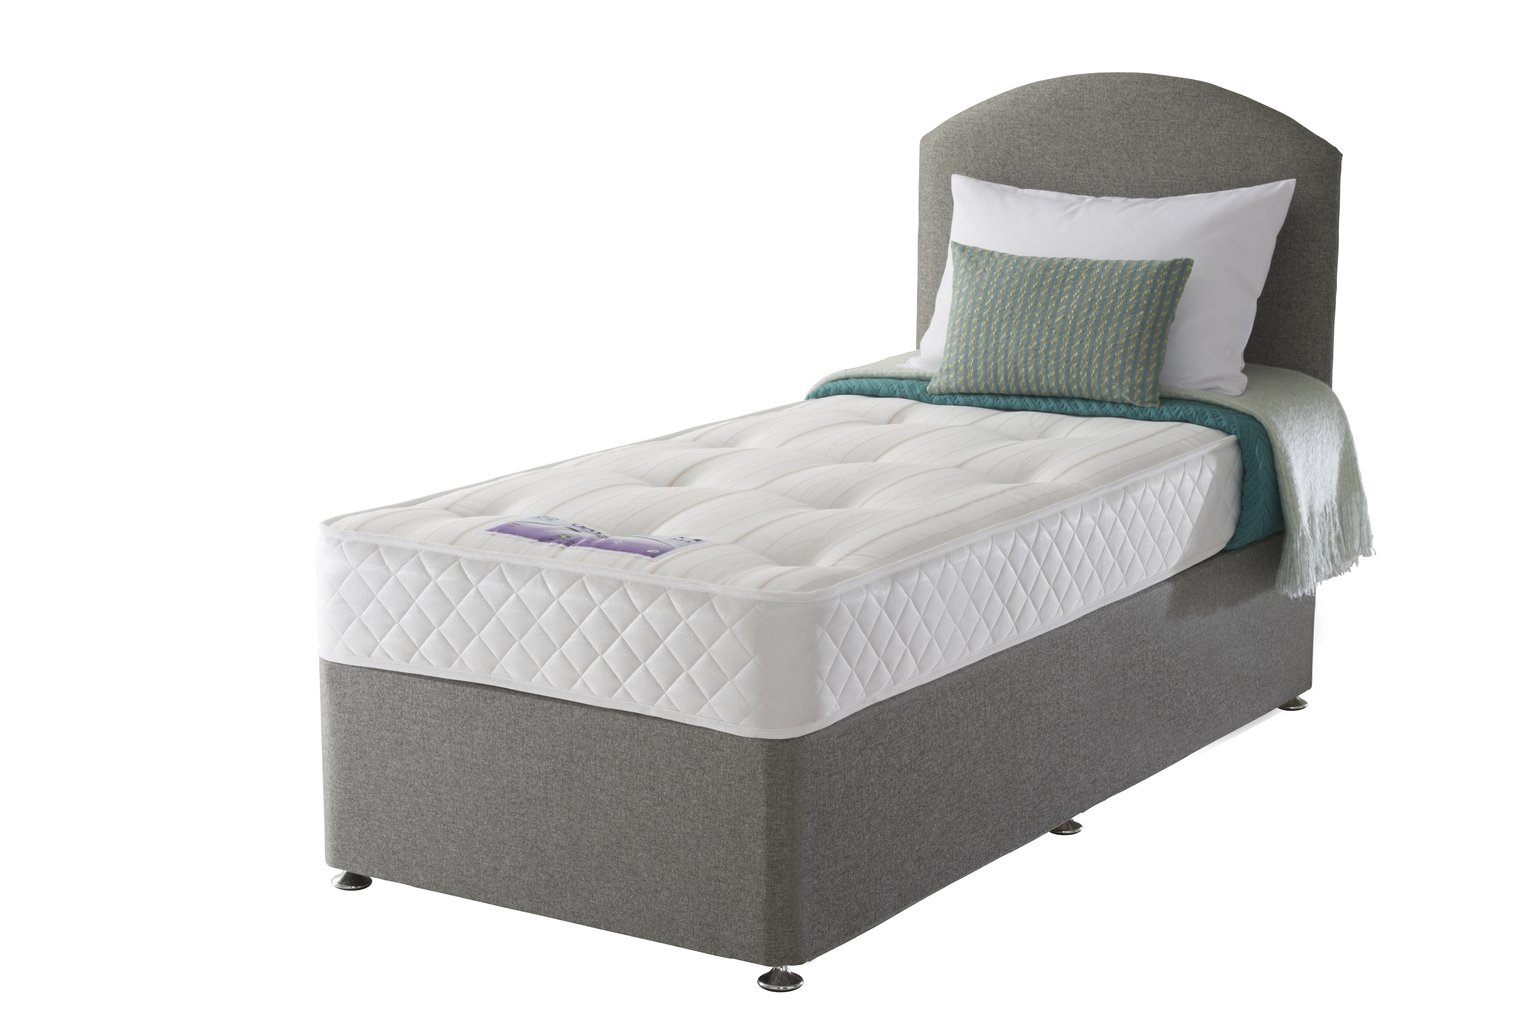 Sealy - Posturepedic Firm Ortho Single - Divan Bed at Argos